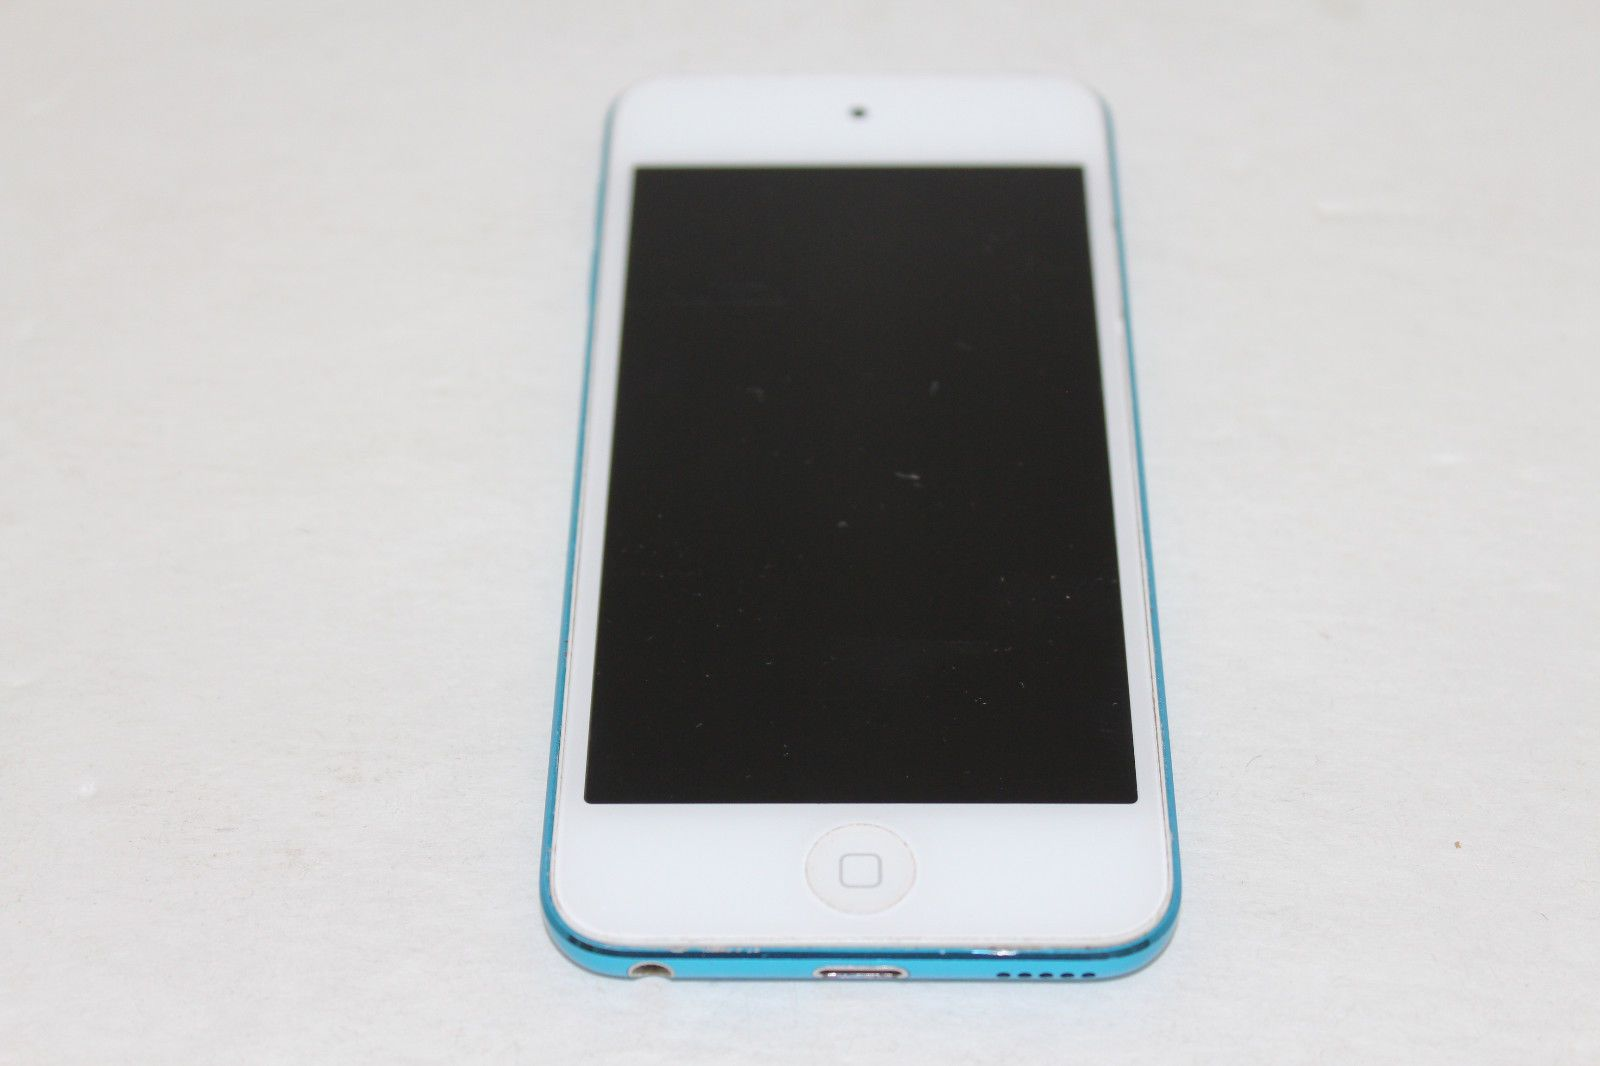 Apple iPod Touch 5th Generation 16GB Blue AS IS https://t.co/X2HzWy8iPv https://t.co/PAKE75G36o